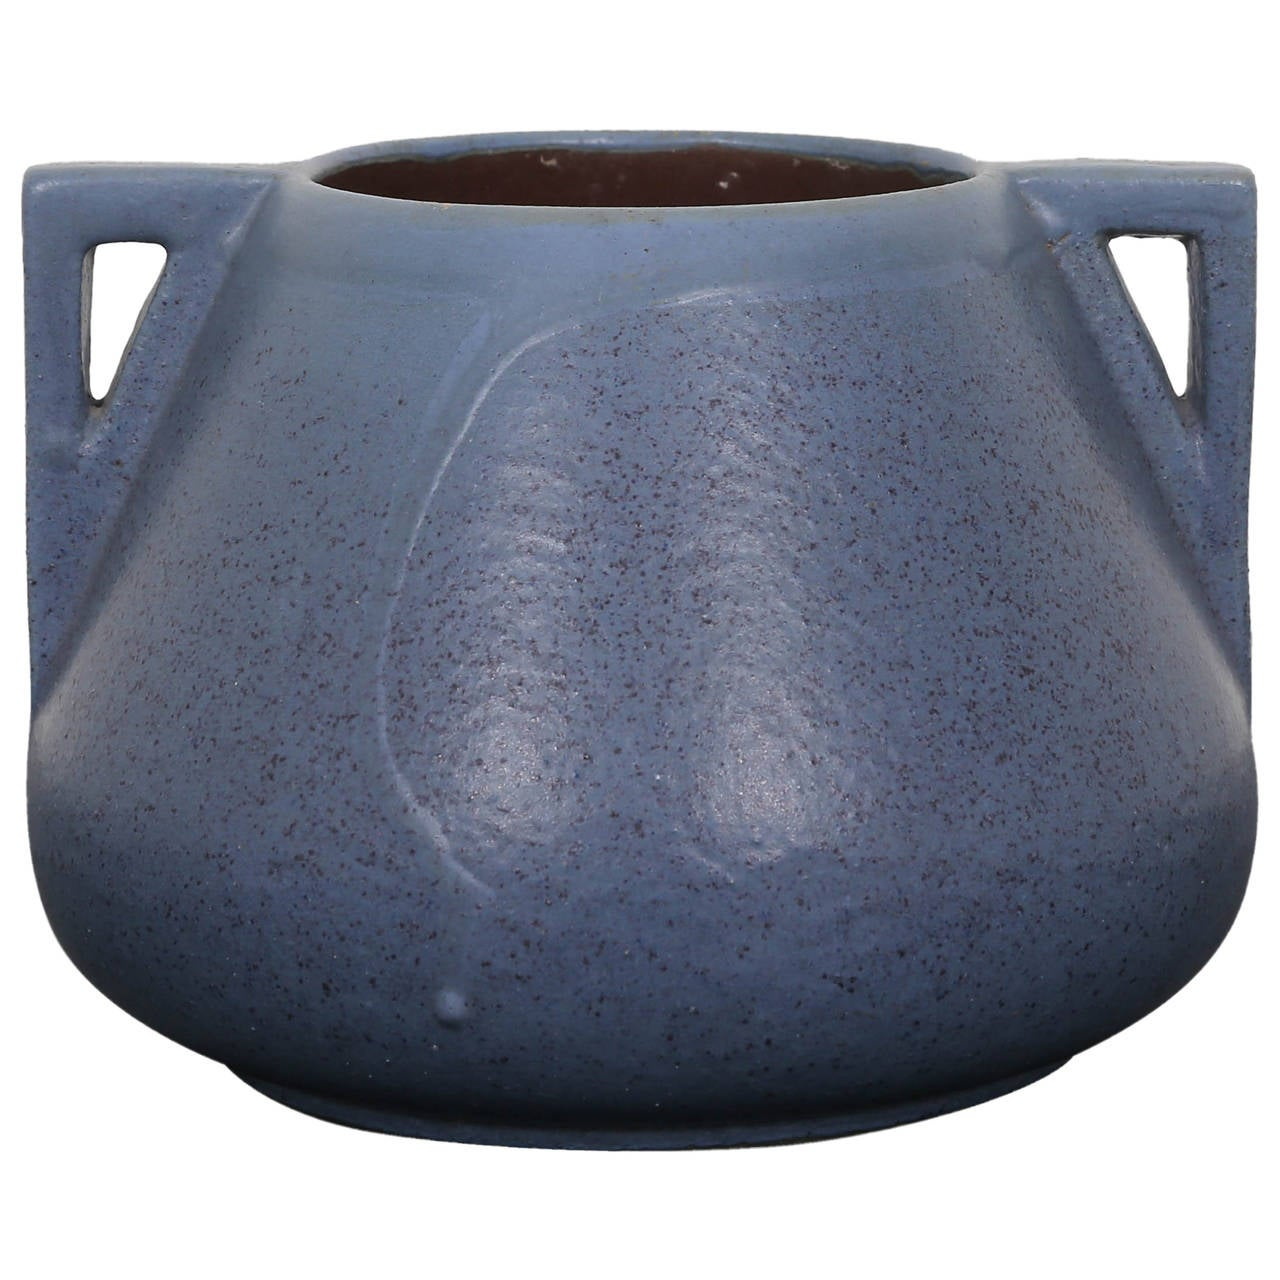 Fulper two handle arts and crafts pottery vase for sale at for Arts and crafts vases pottery